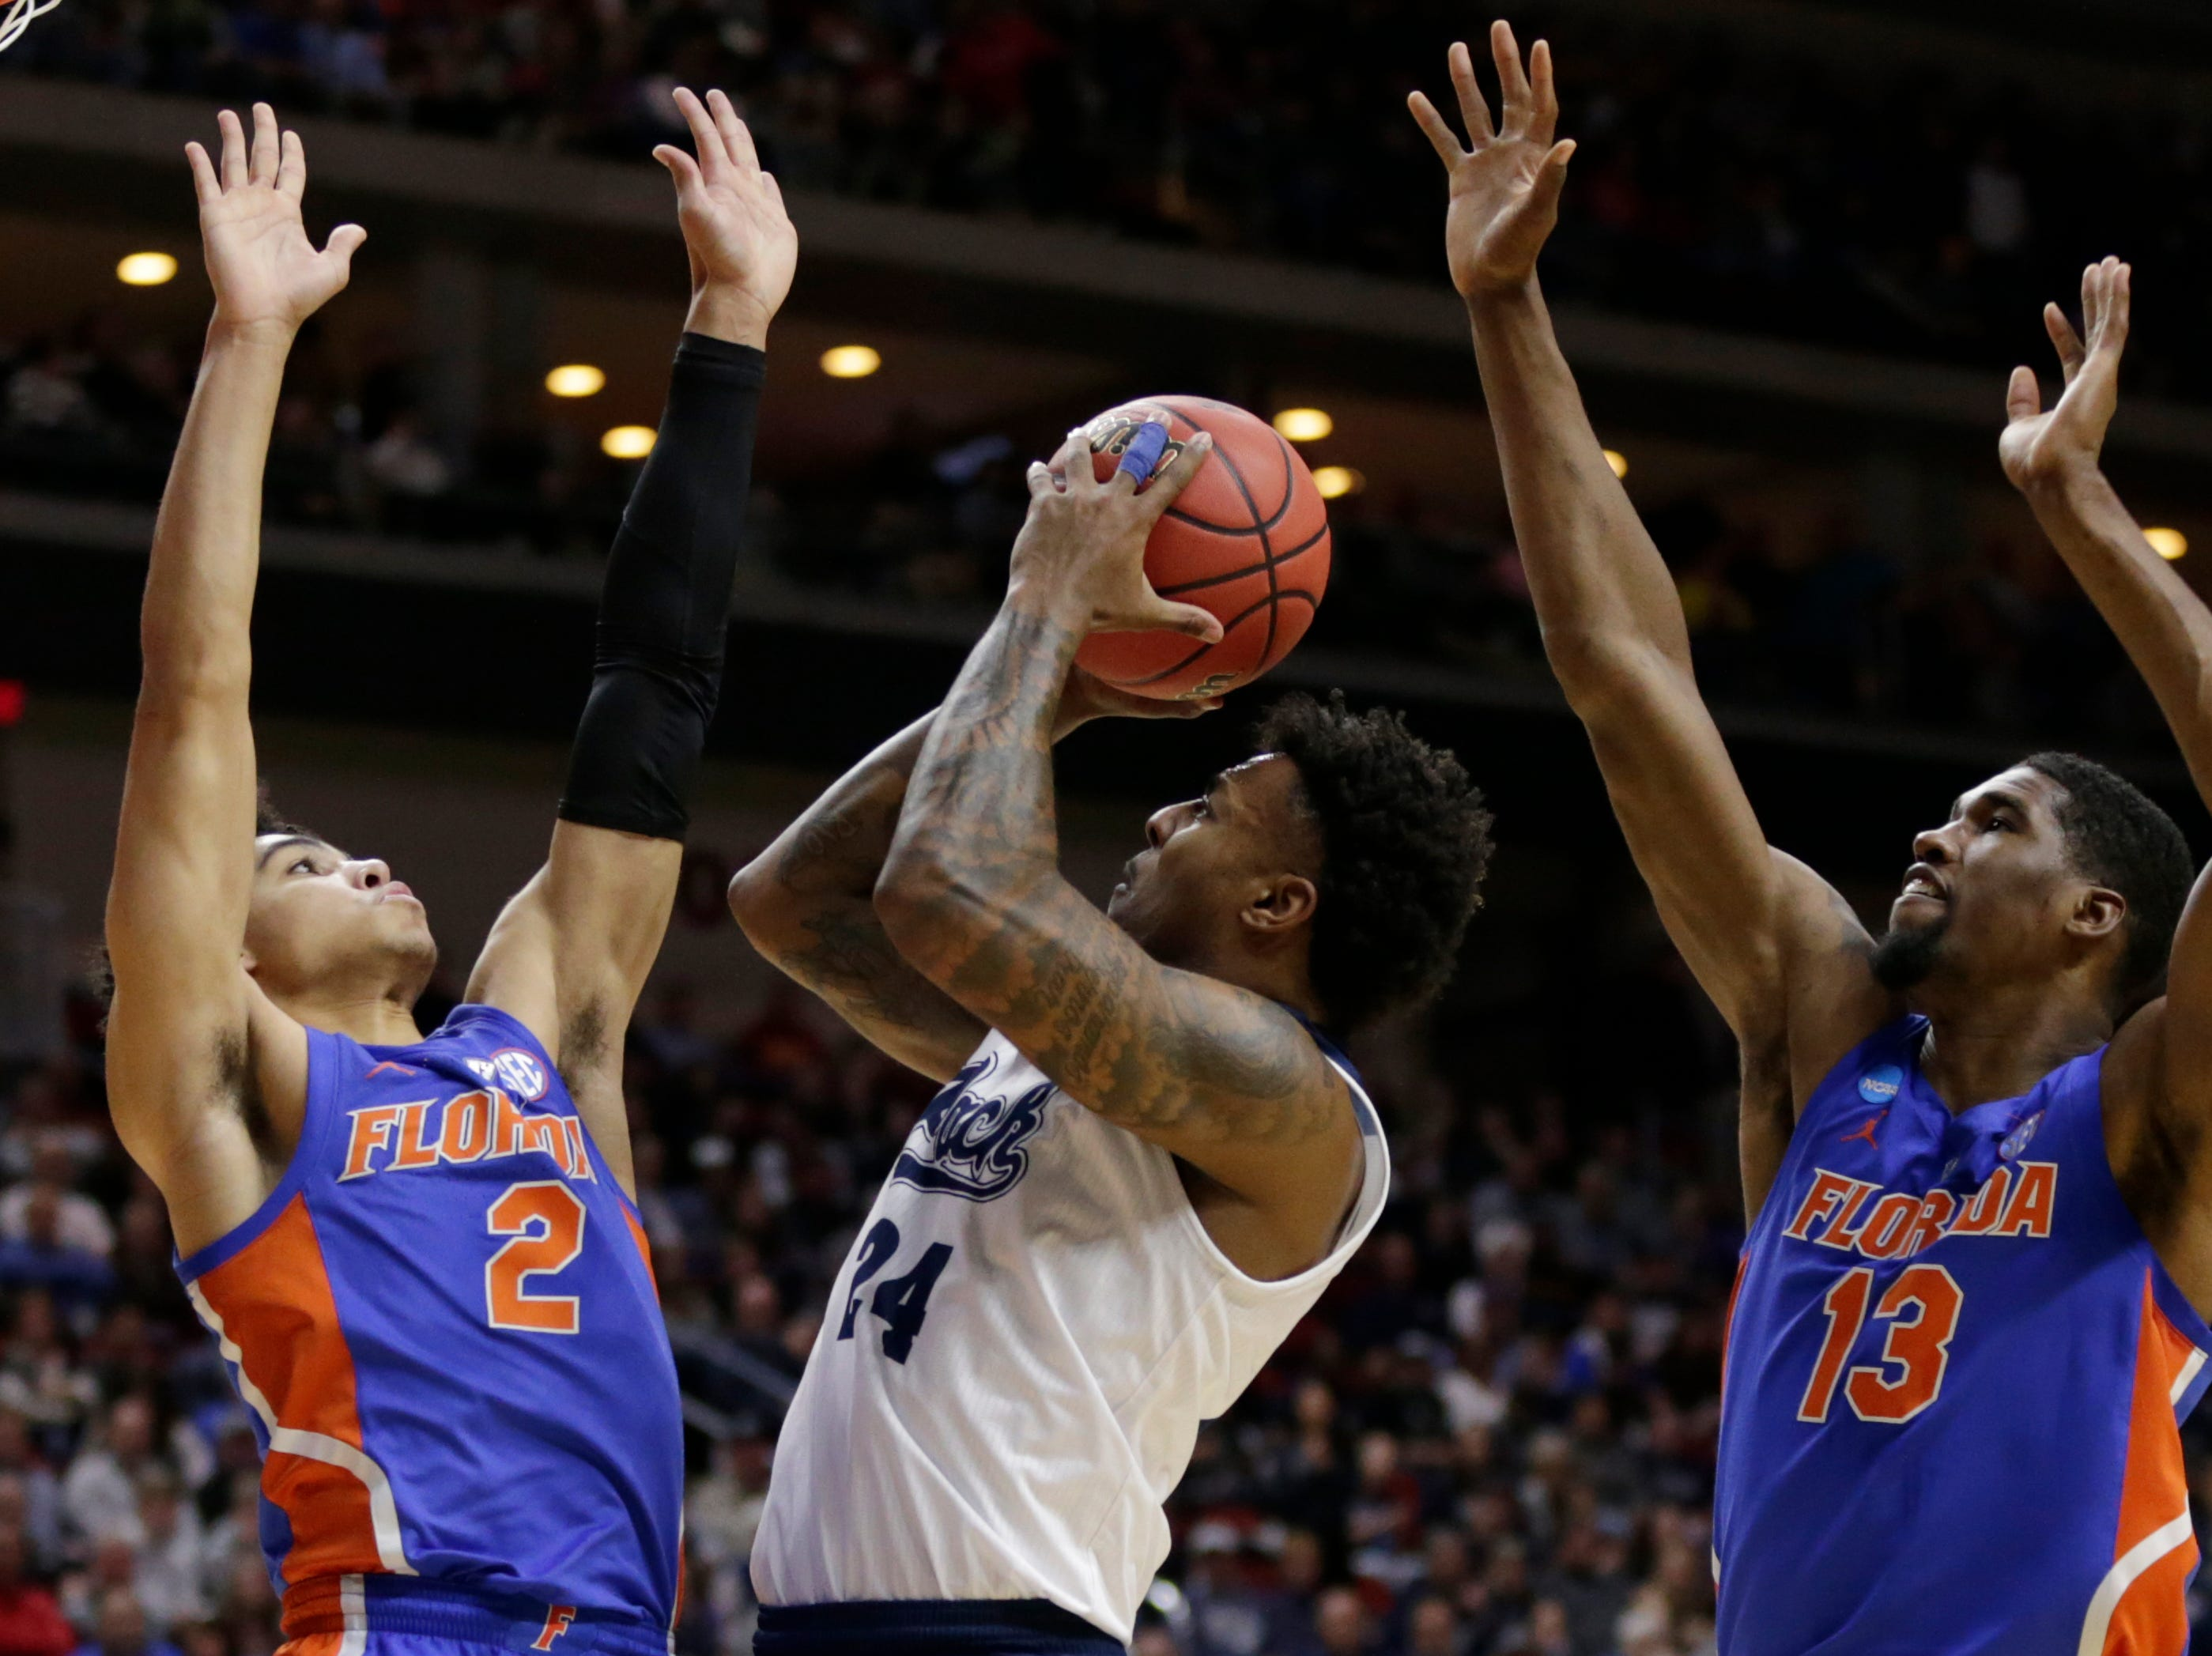 Nevada's Jordan Caroline (24) shoots between Florida's Andrew Nembhard (2) and Kevarrius Hayes (13) during the first half of a first round men's college basketball game in the NCAA Tournament in Des Moines, Iowa, Thursday, March 21, 2019. (AP Photo/Nati Harnik)